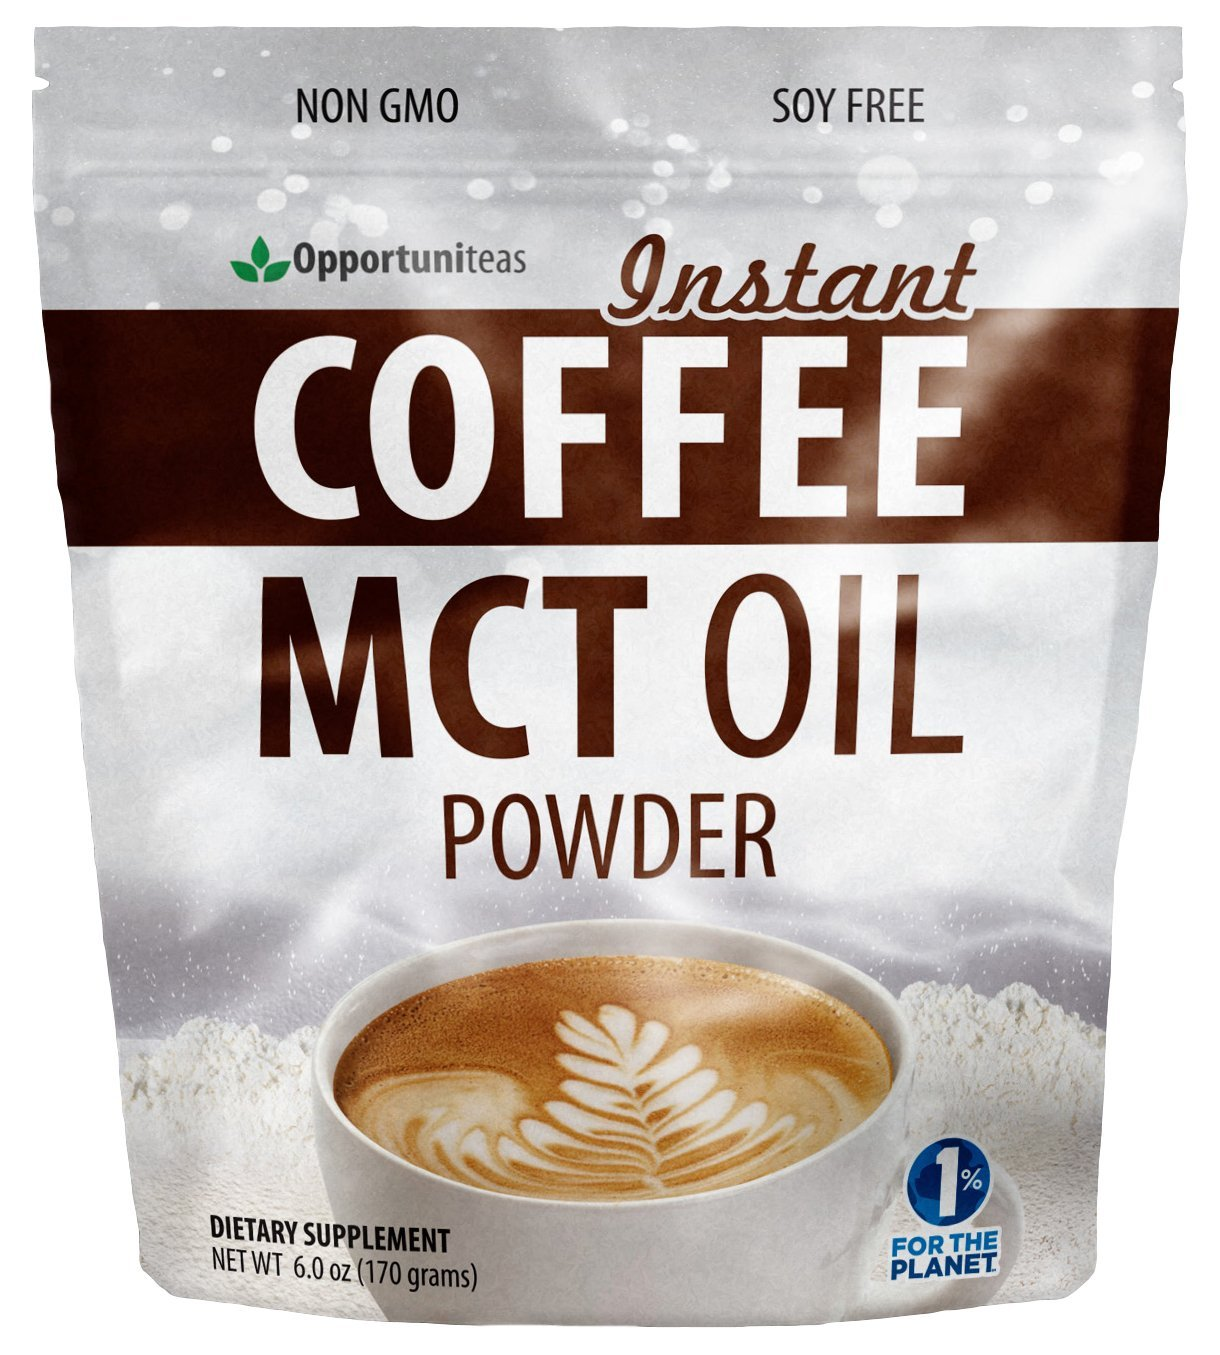 MCT Oil Powder + Coffee for Delicious Energy - No Creamer Needed, It's Ready Instantly - Great for Keto Diet - Natural Energy Supplement with Fiber - Power Exercise or Workout - 6 oz